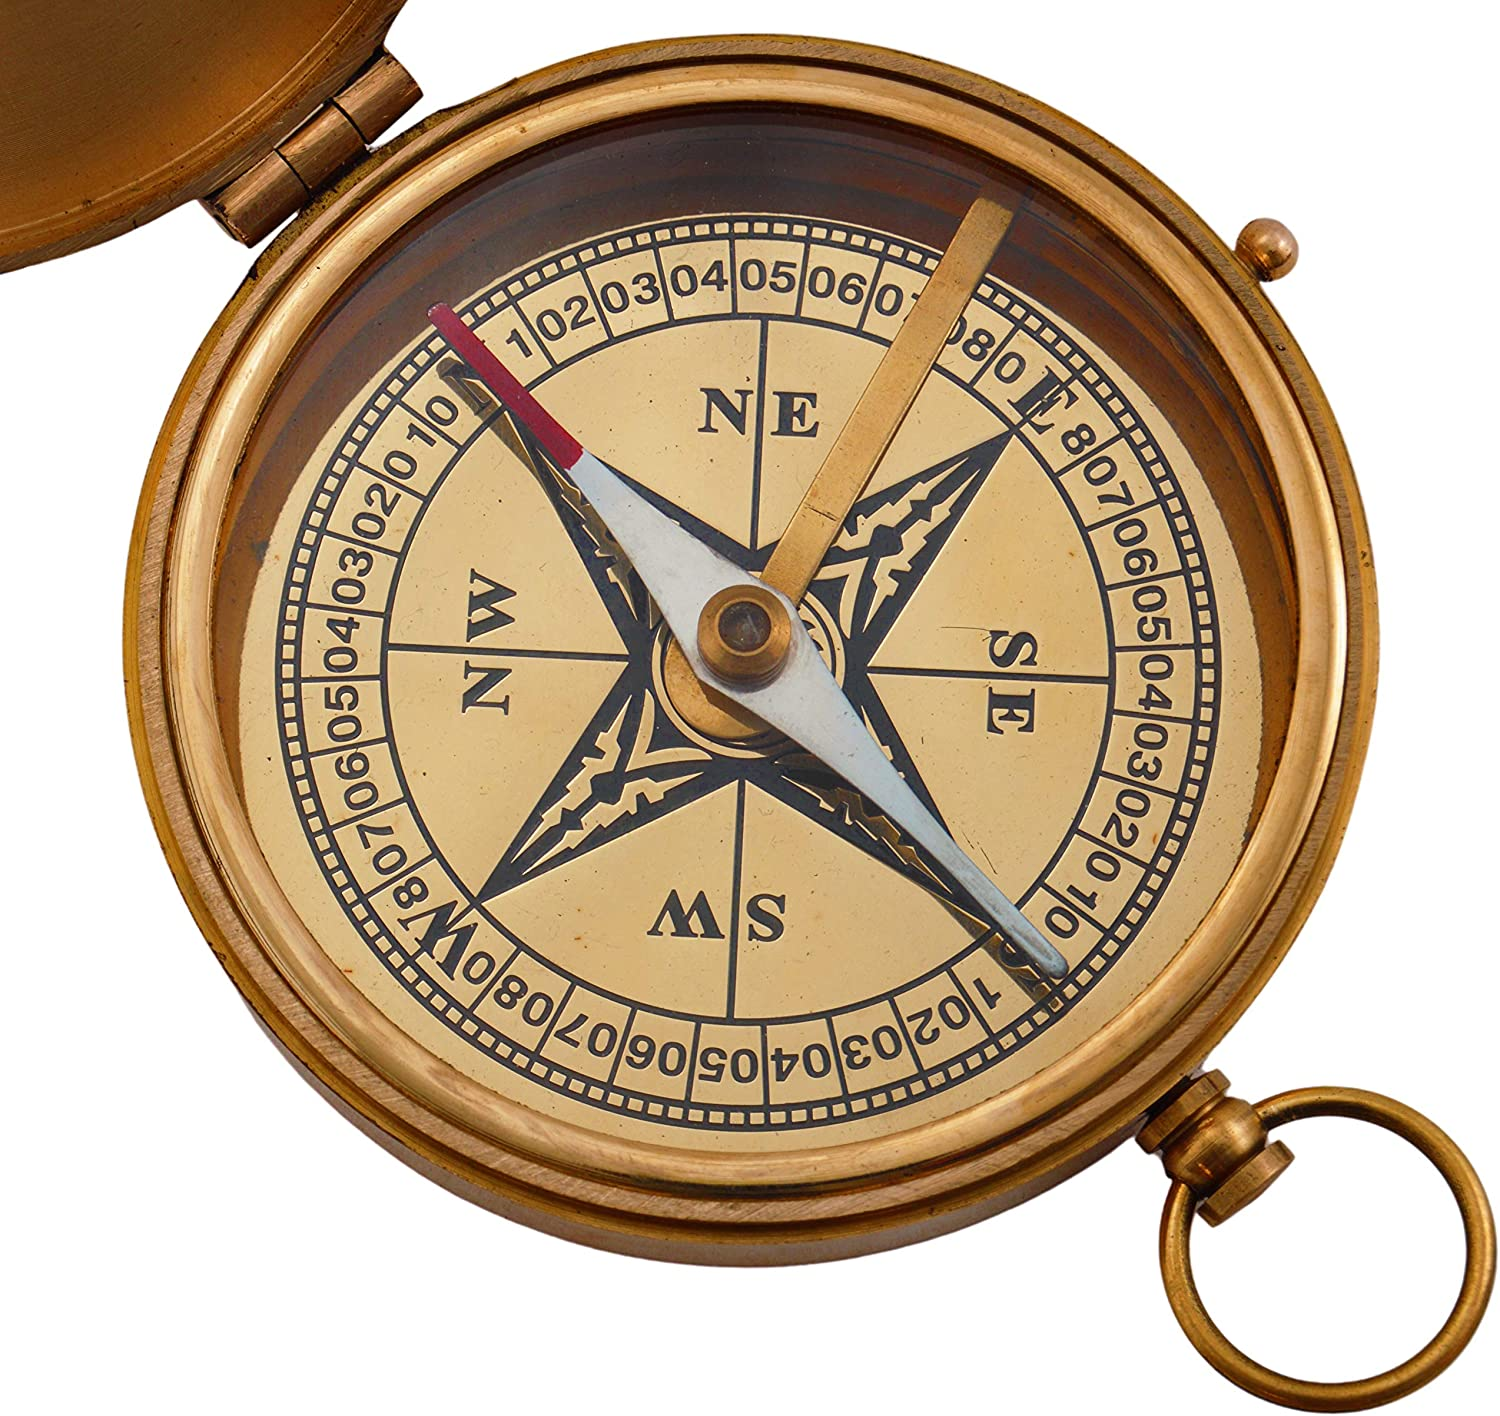 SciencePurchase Large 4 Brass Compass with Rosewood Storage Box Fully Functional Nautical Pirate Cosplay Costume Decoration